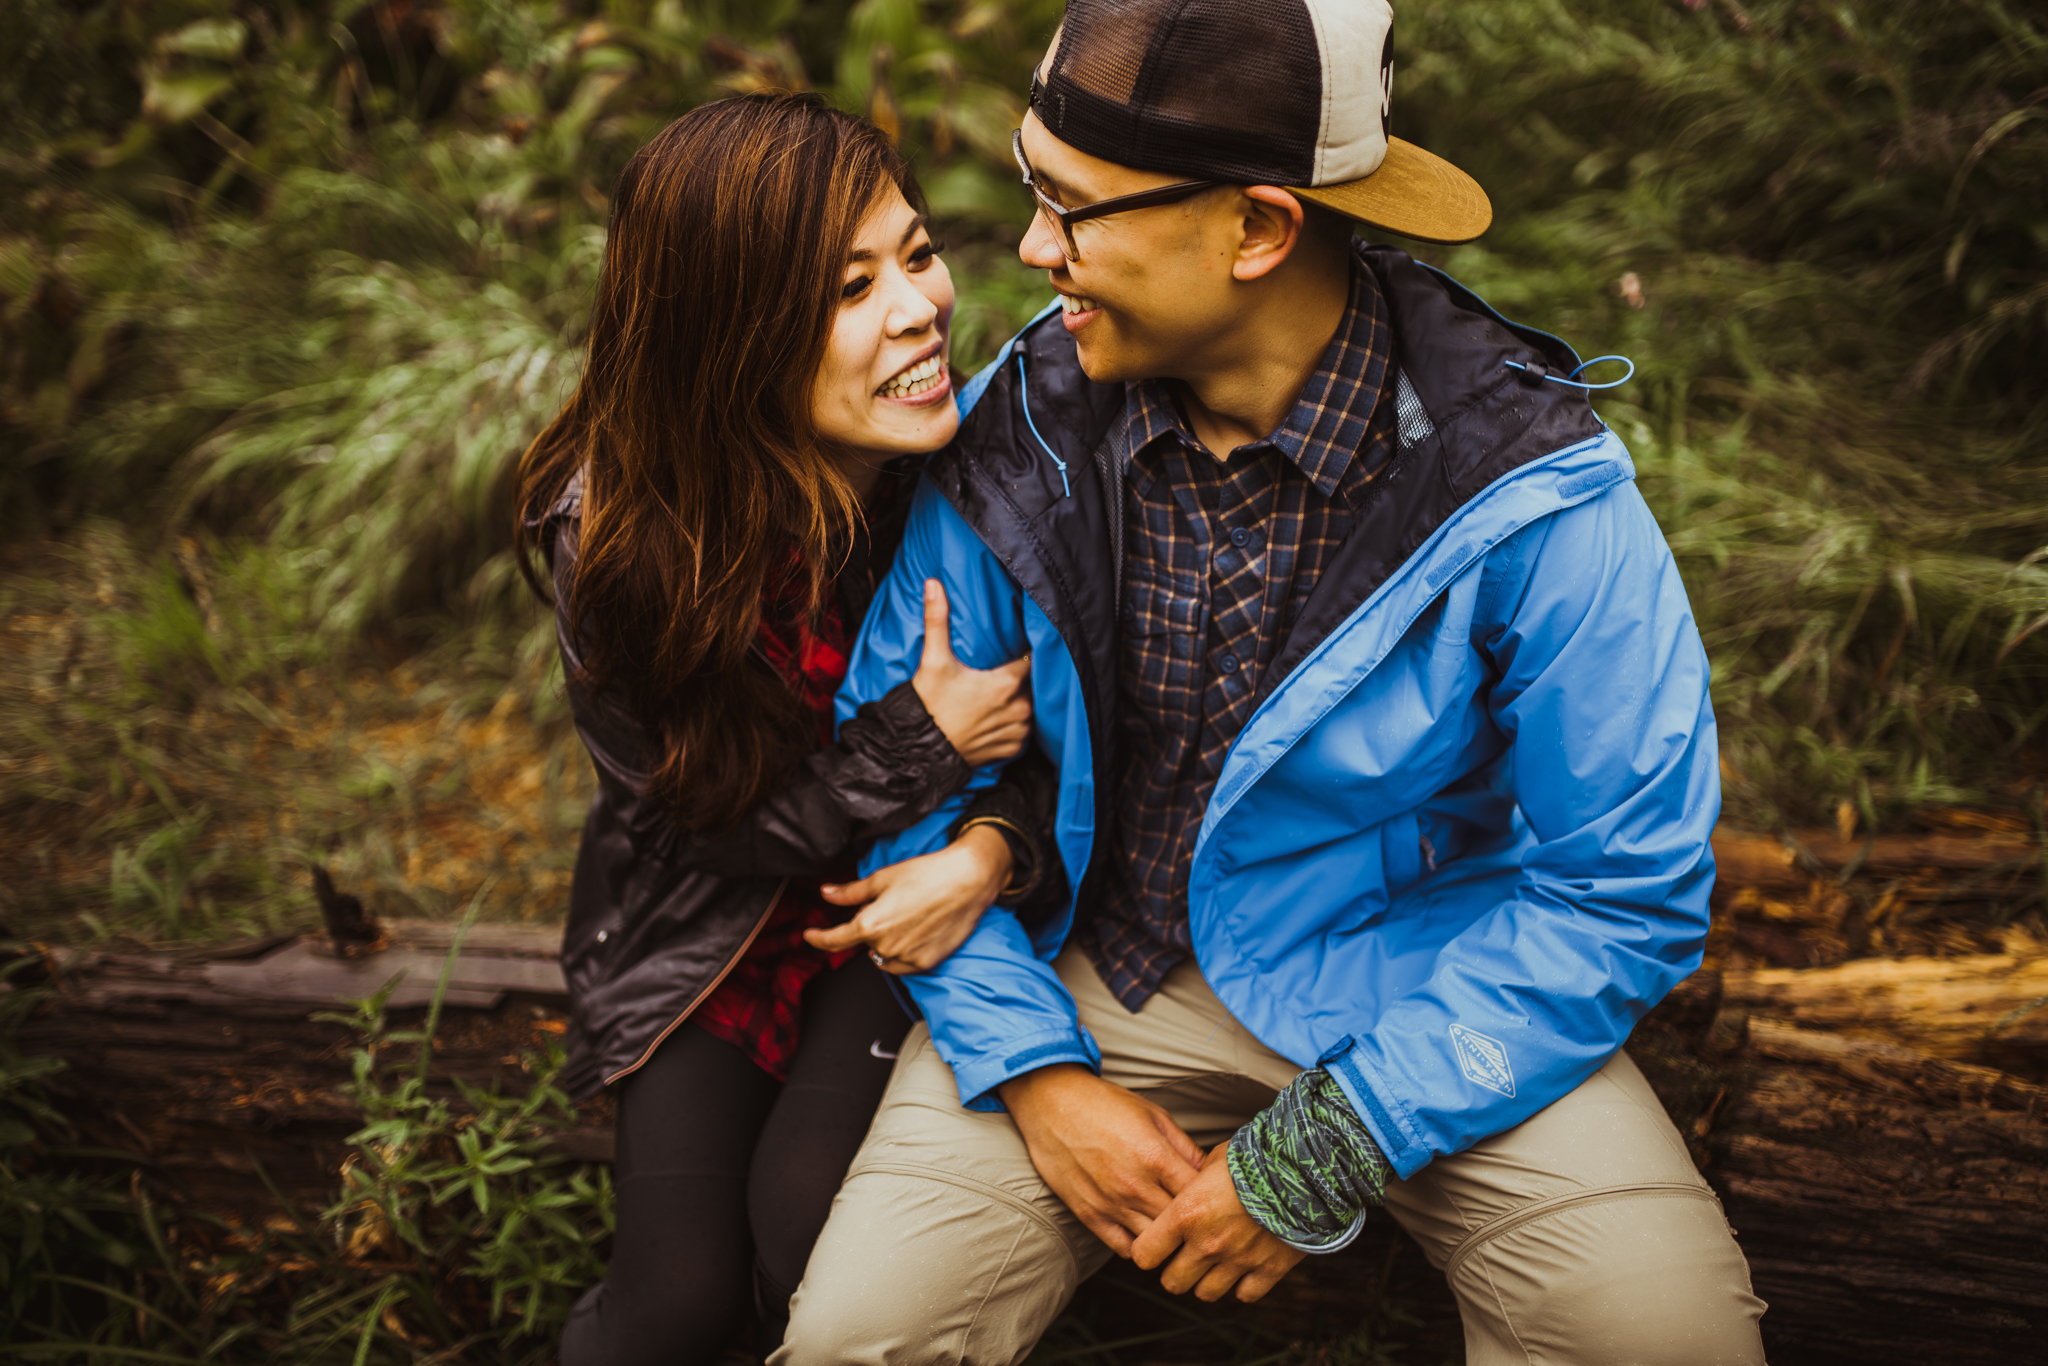 ©Isaiah-&-Taylor-Photography---Hidden-Lake-Cascade-Mountains-Engagement,-Washington-040.jpg